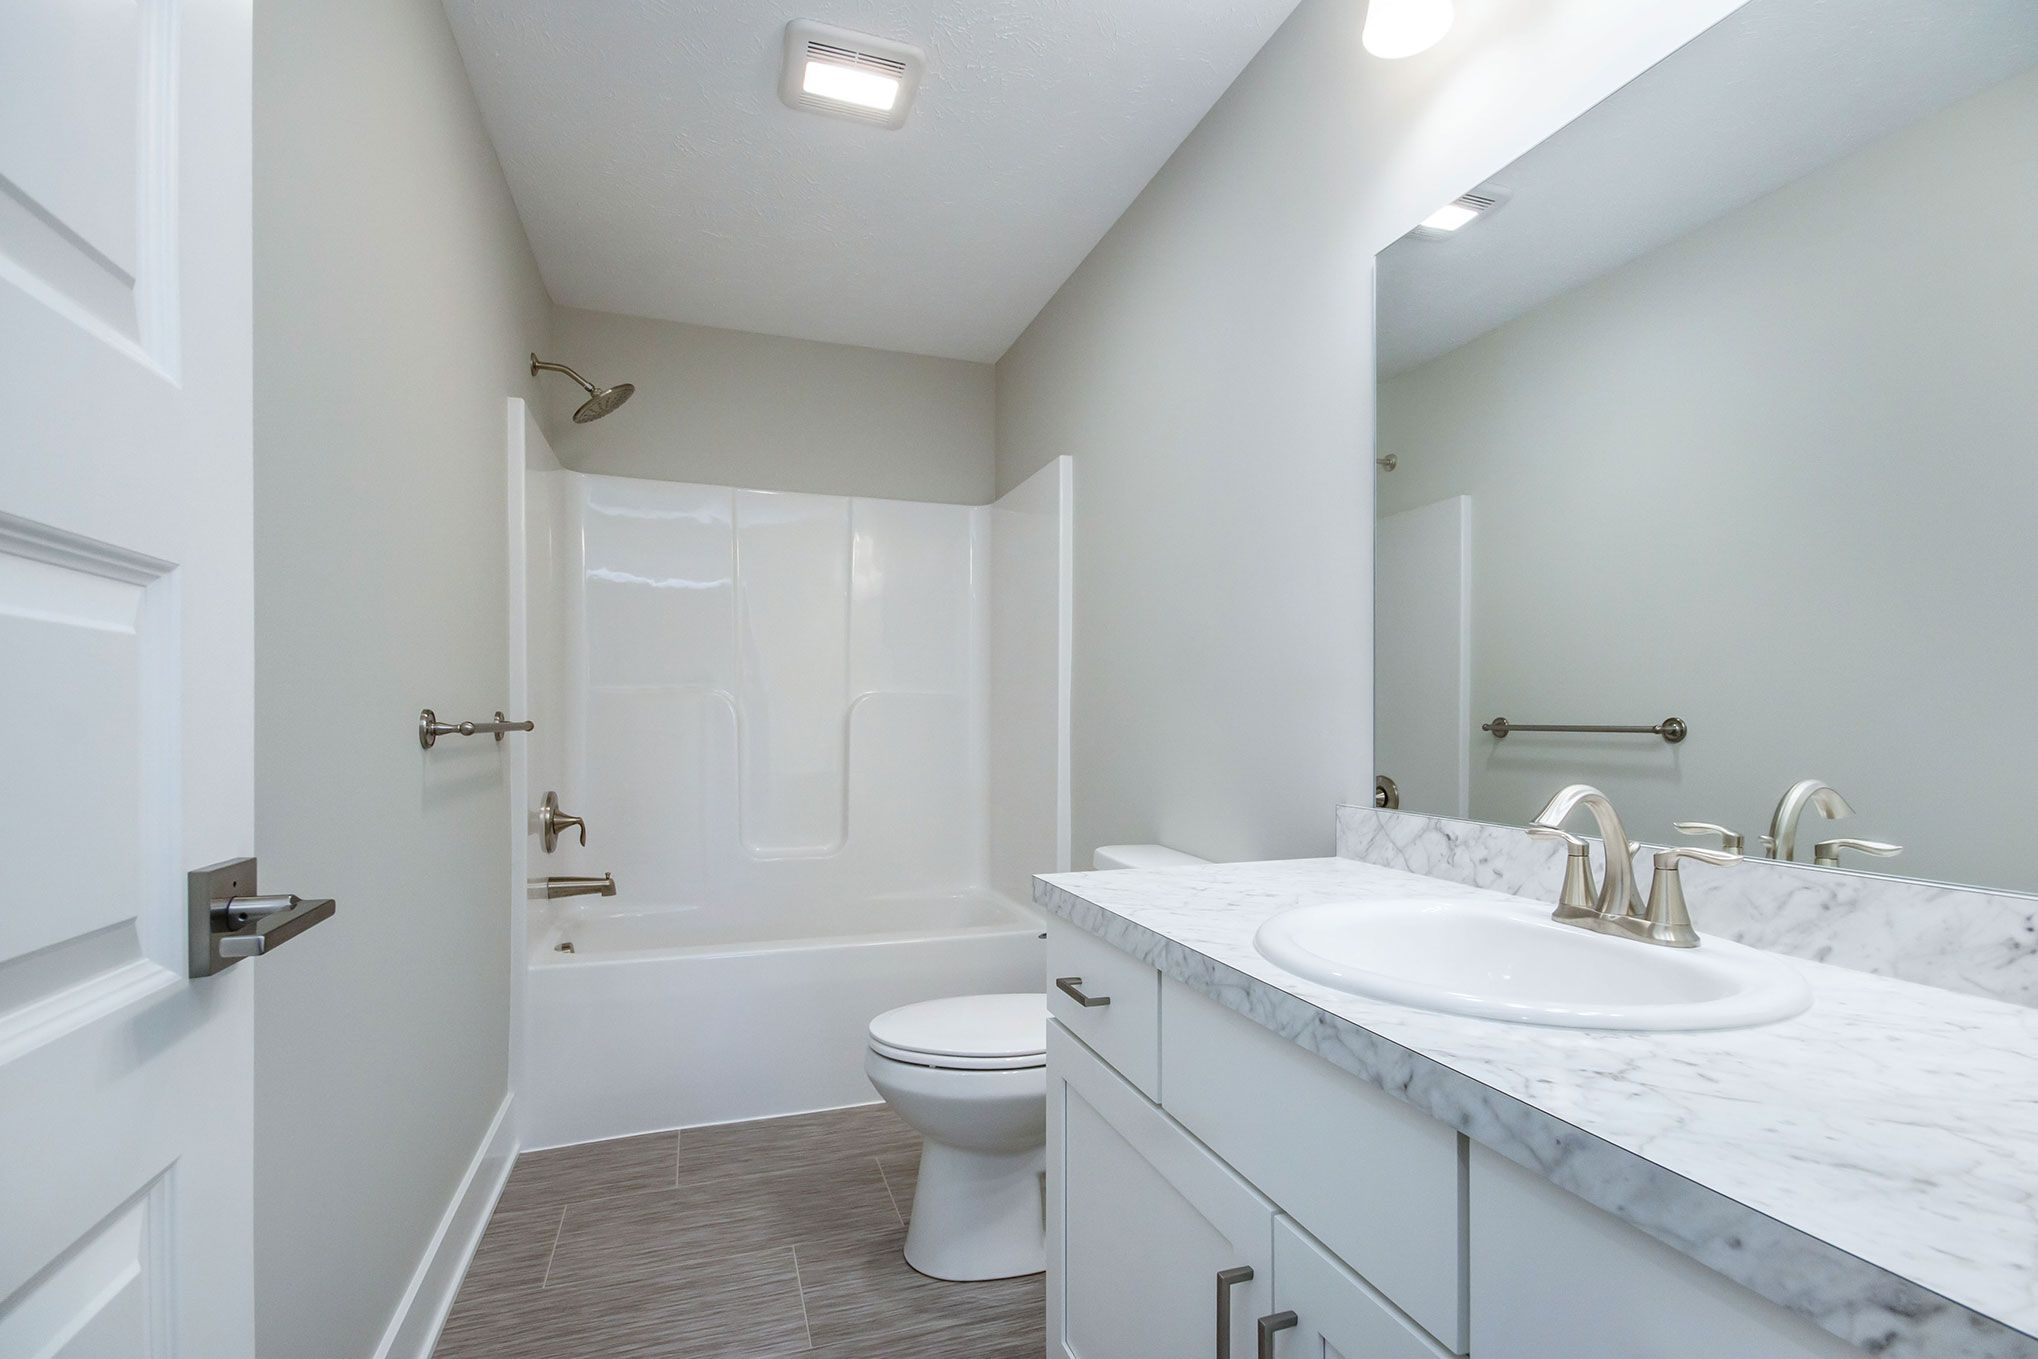 Bathroom featured in The Willow ll By Eastbrook Homes Inc. in Grand Rapids, MI